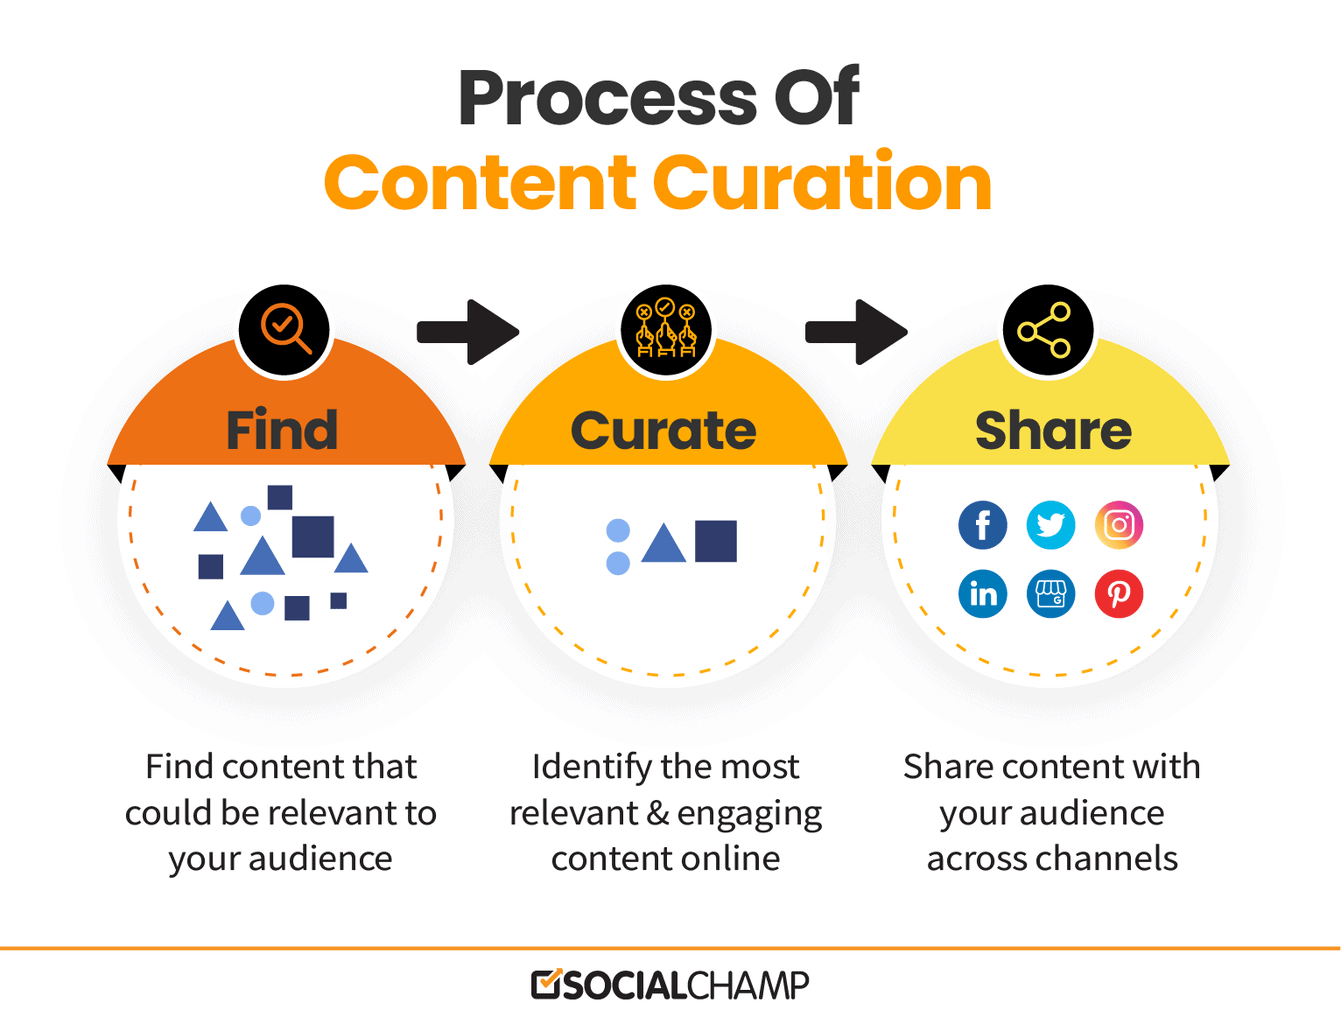 Process of Content Curation